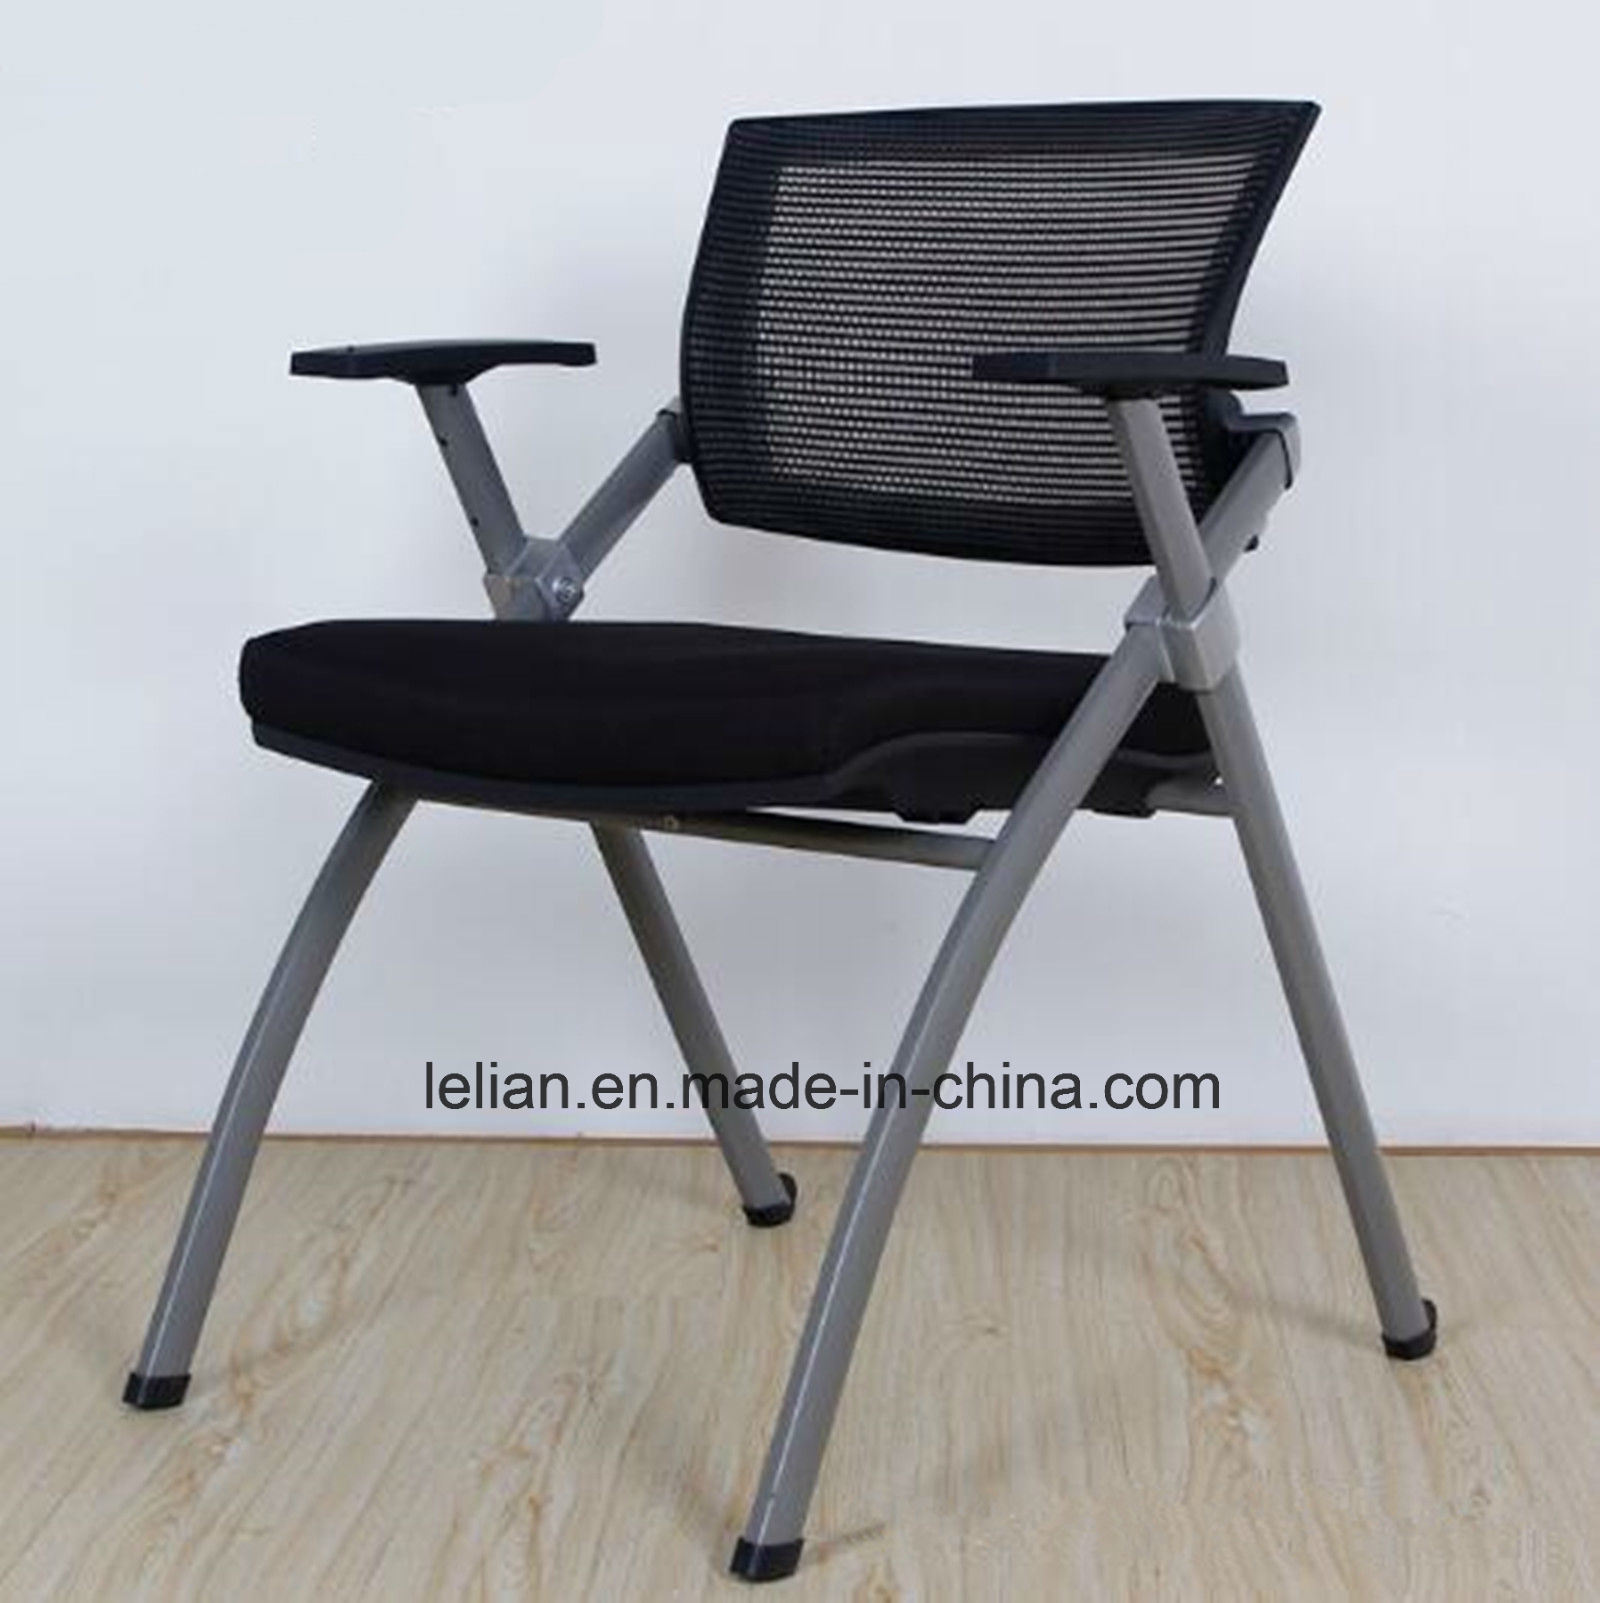 [Hot Item] High Quality Study Furniture Foldable Meeting Chair Office Chair  with Writing Board